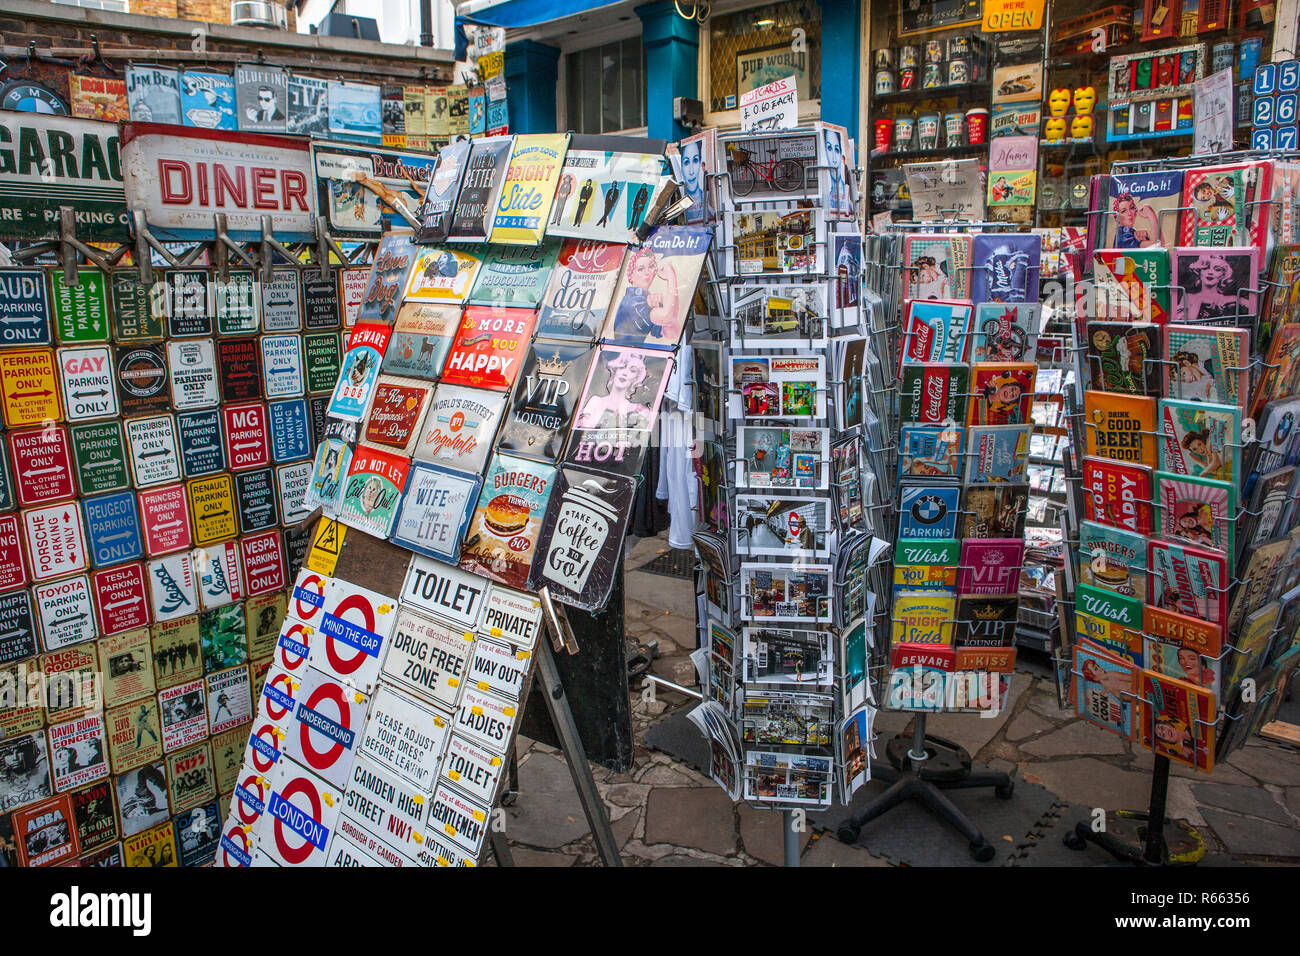 Stands of London Memorabilia and Embossed Signs, Portobello Road, Notting Hill - Stock Image